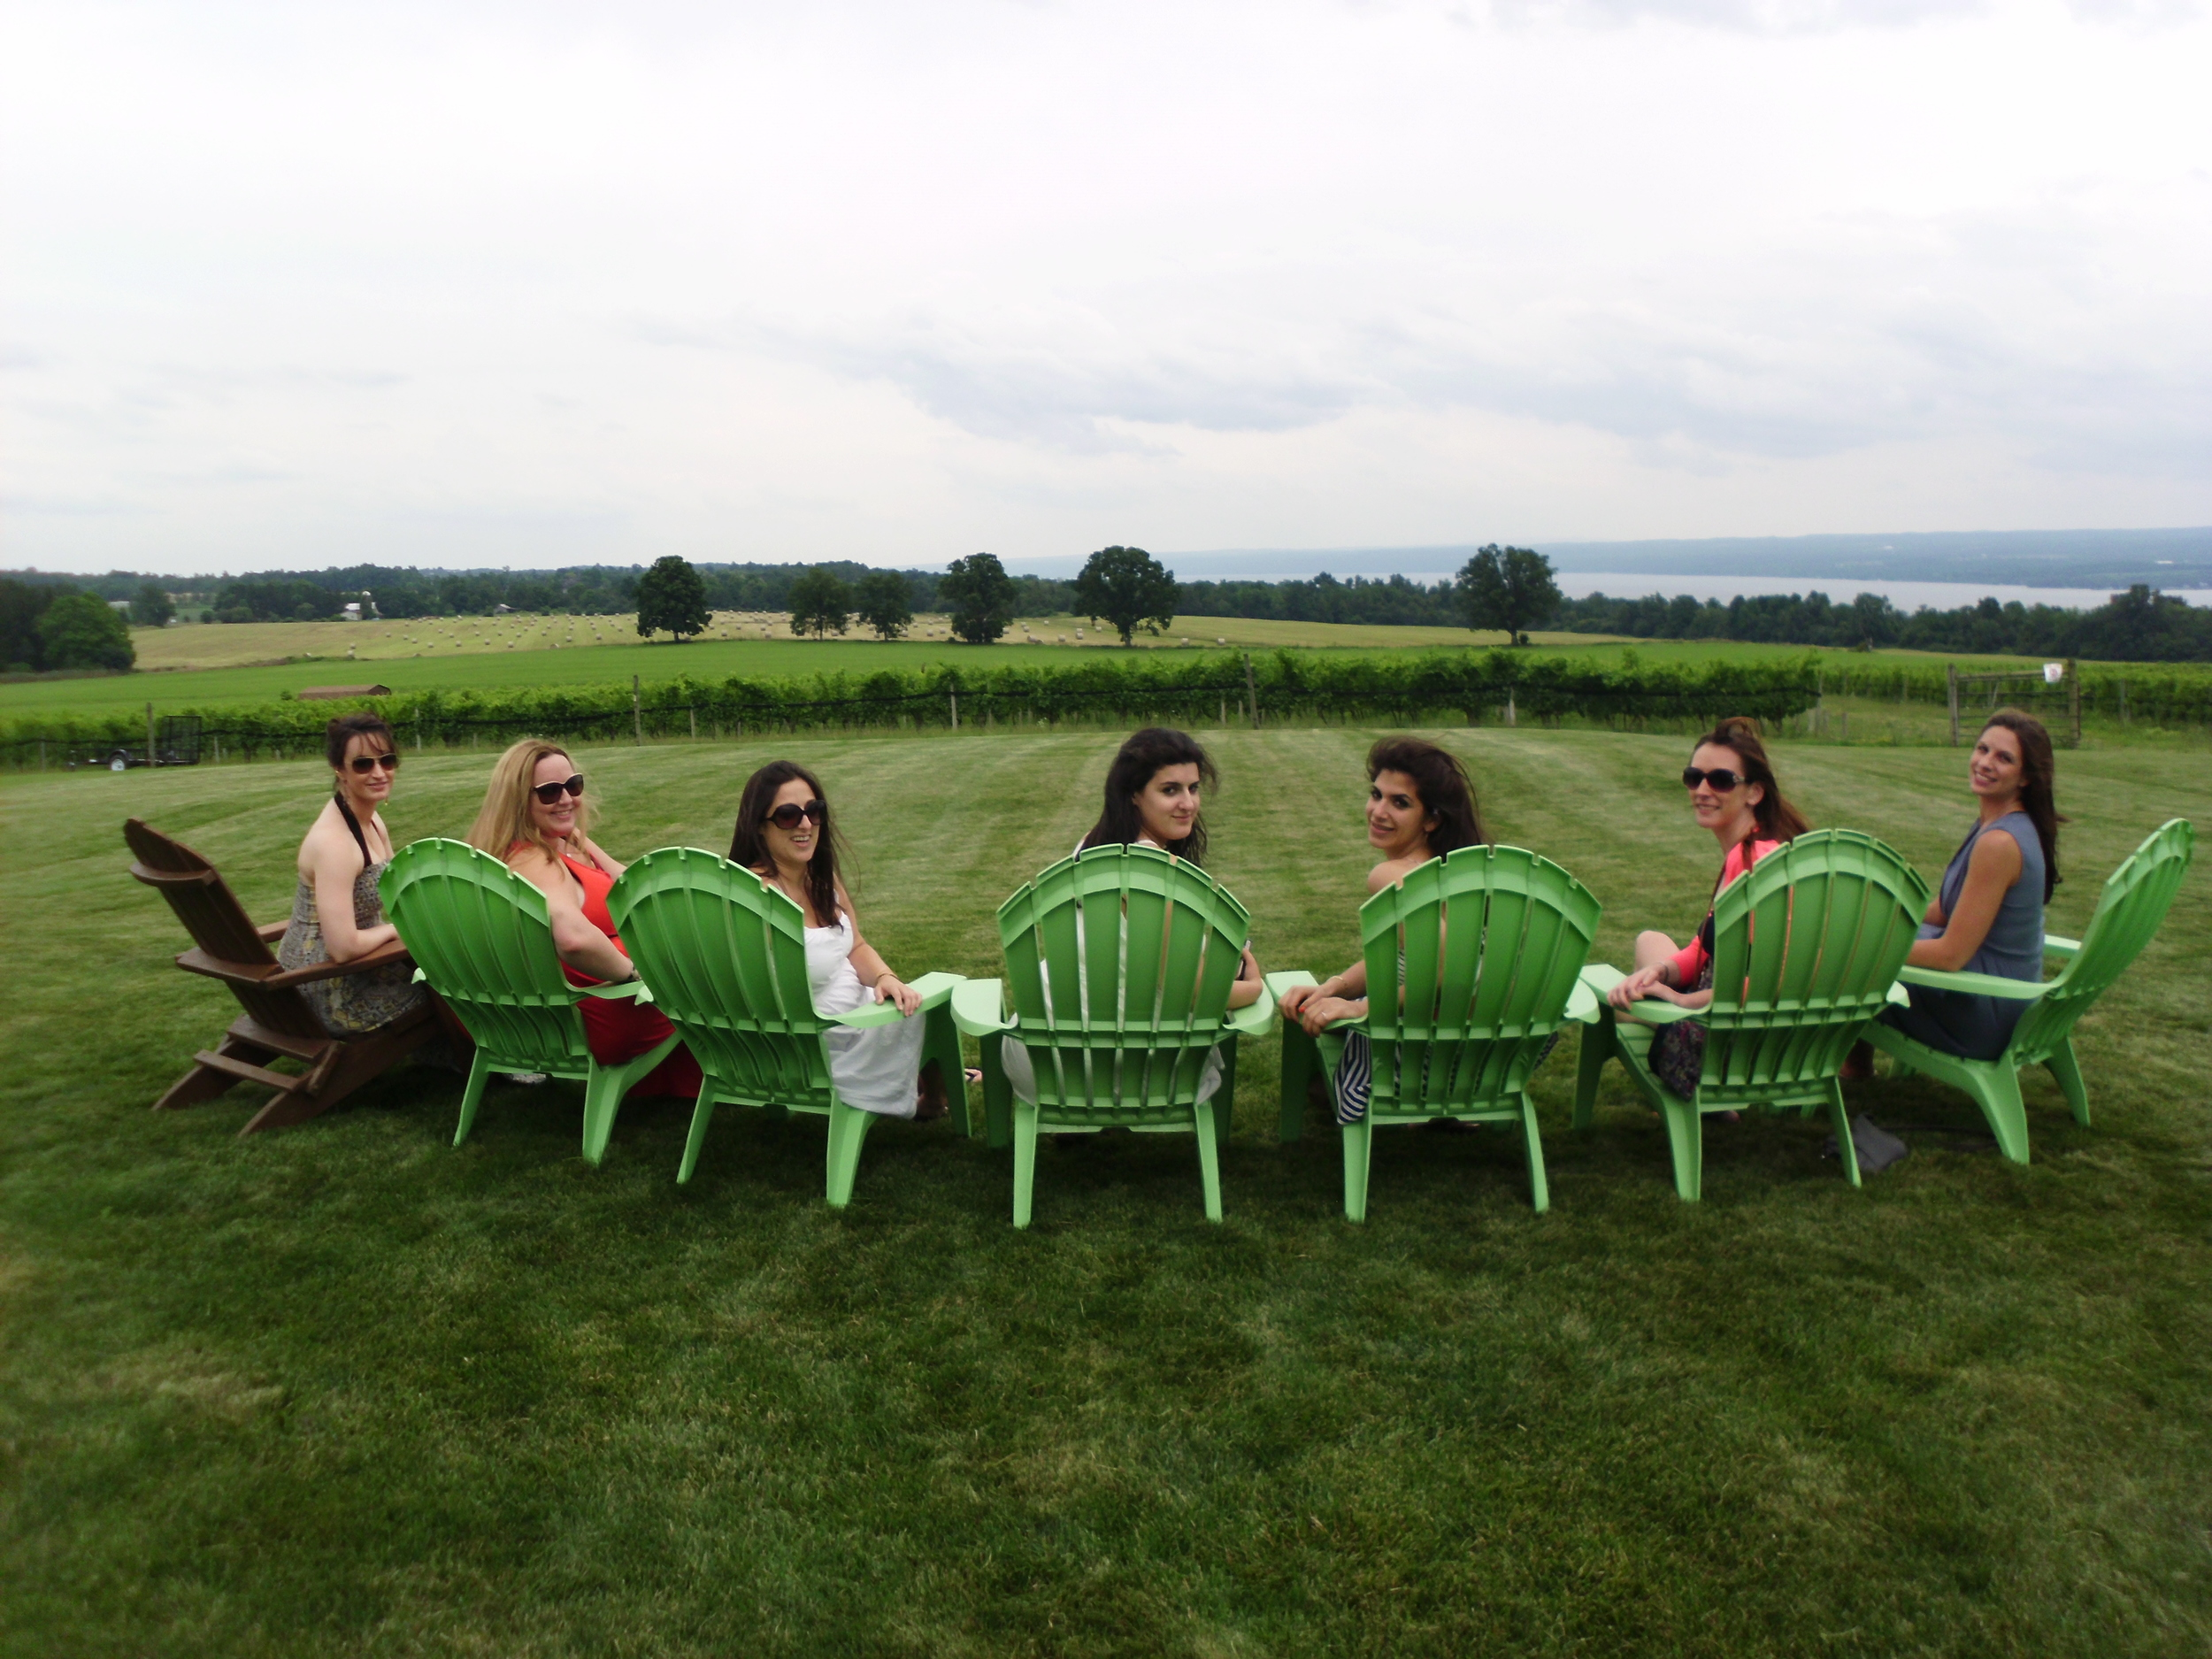 bachelorettes in green chairs with vineyard.JPG